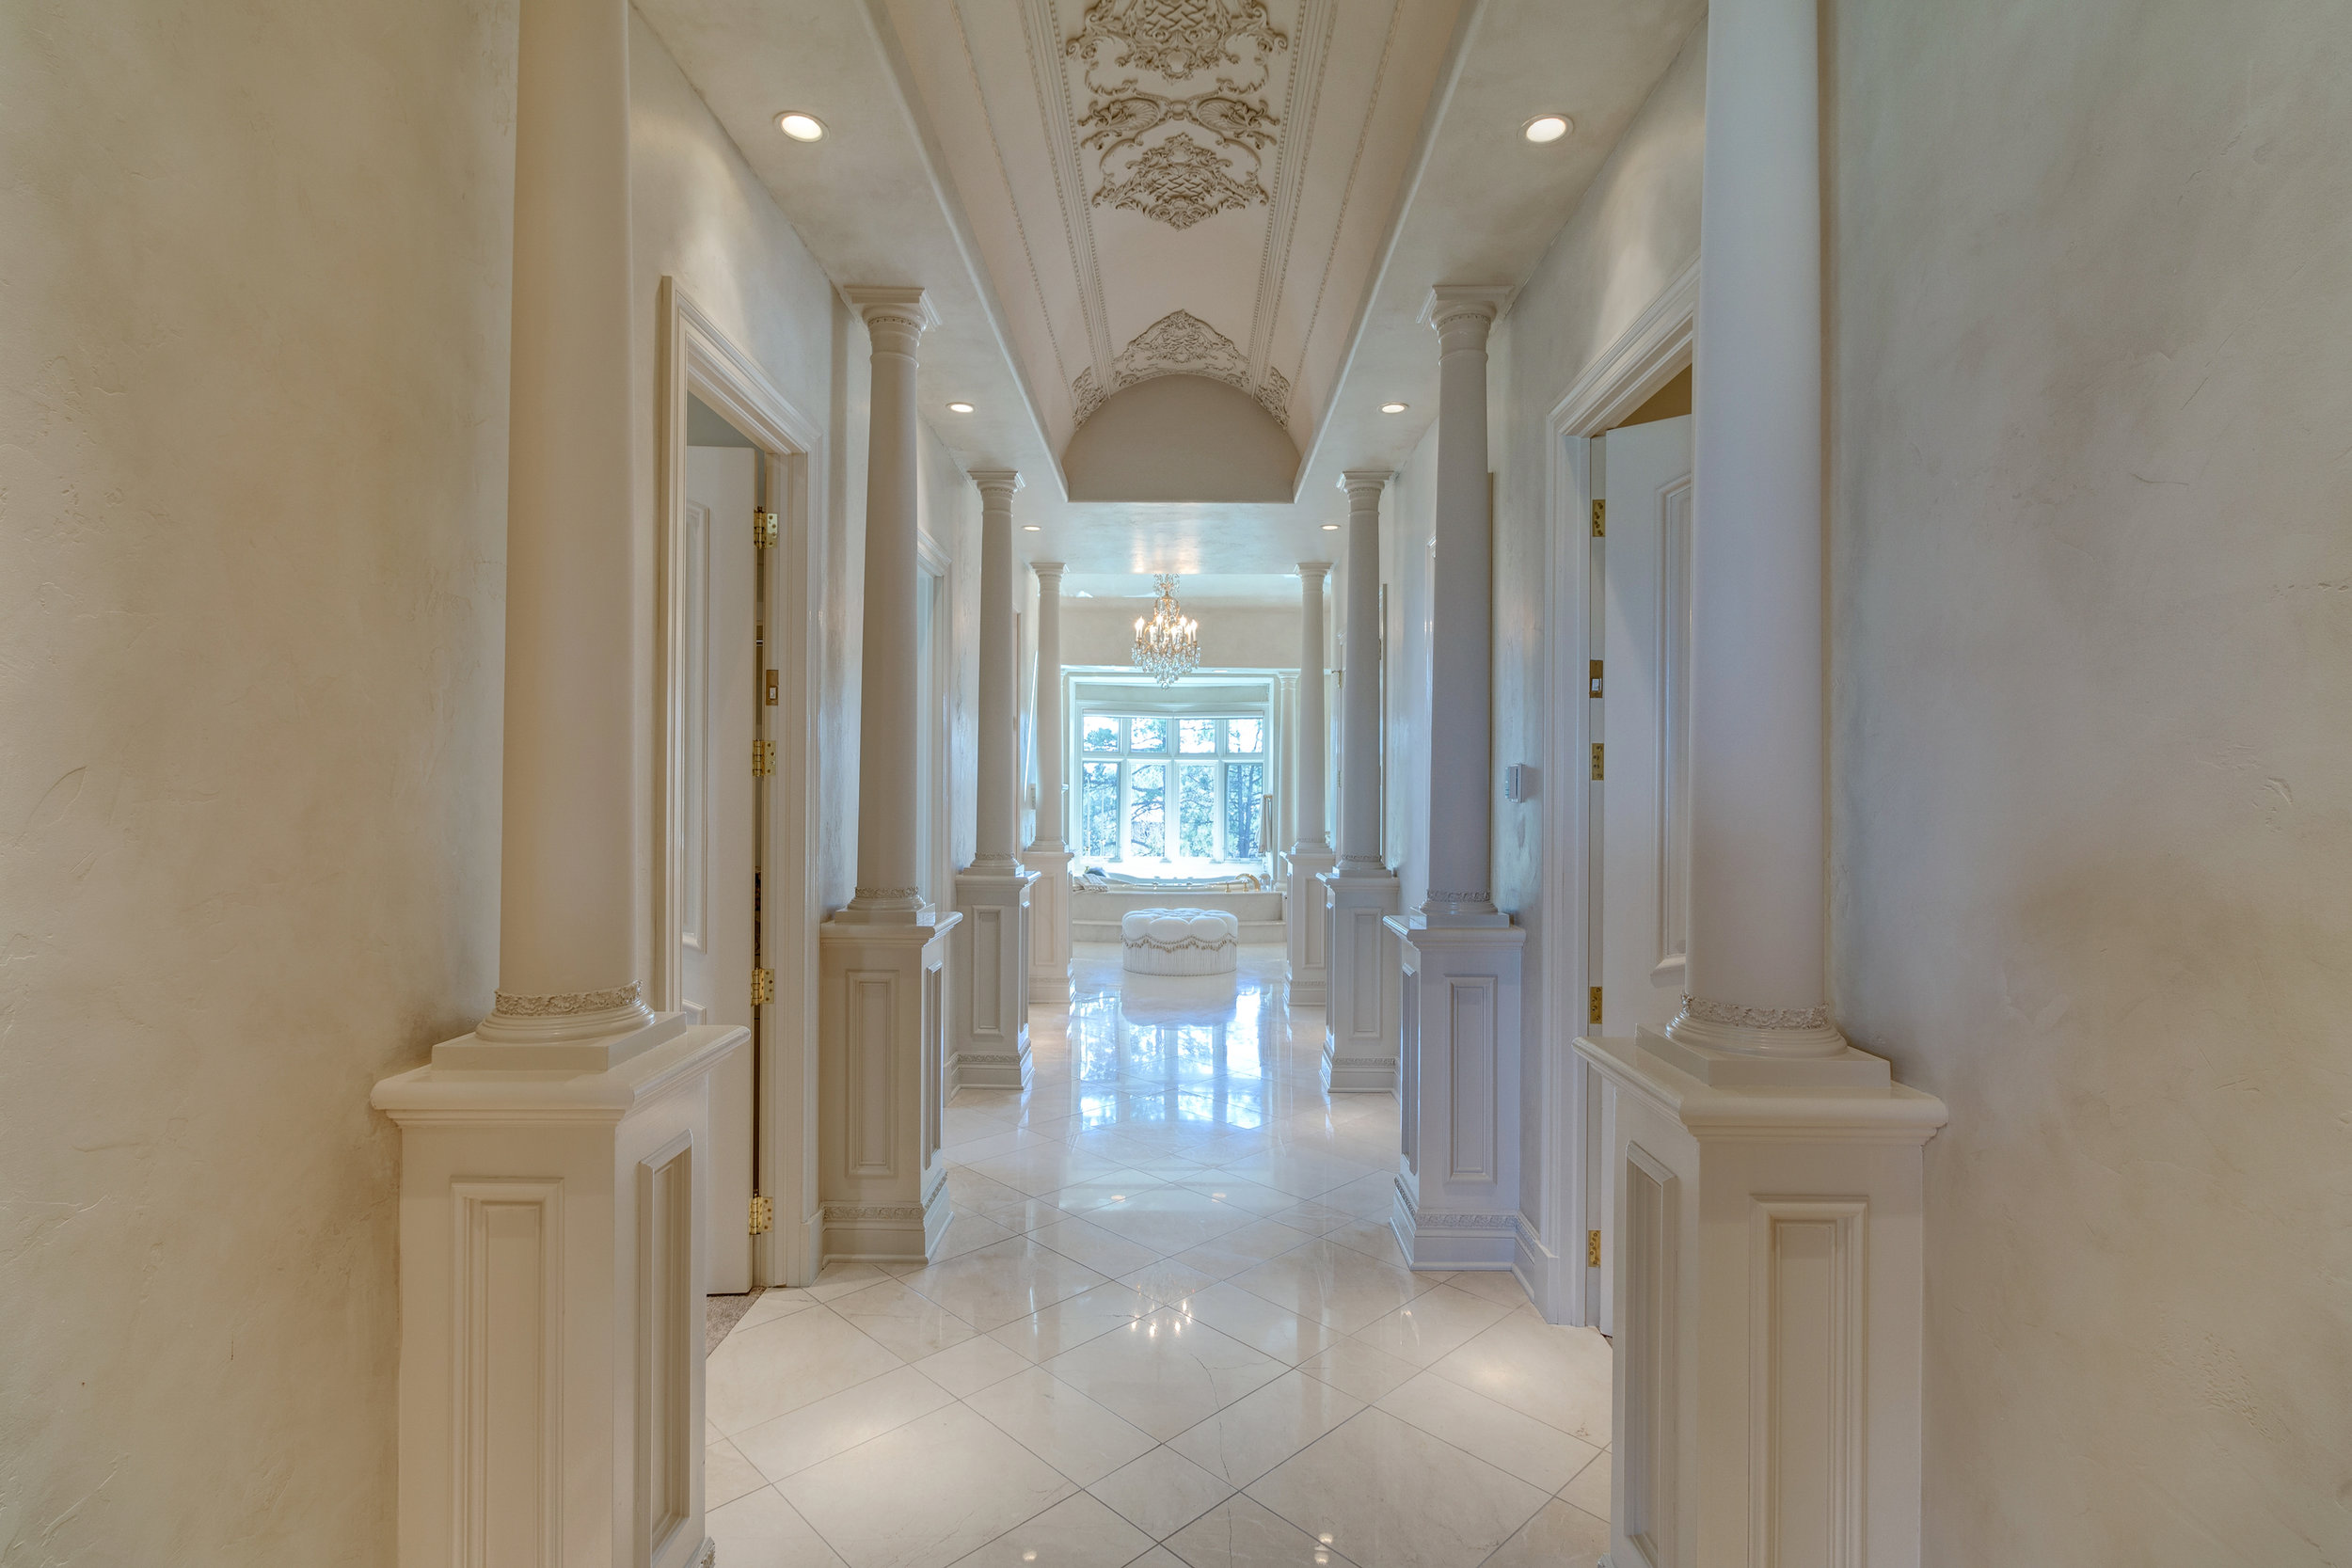 13-Incredible hallway that leads to the master's %22spa%22 bathroom.jpg